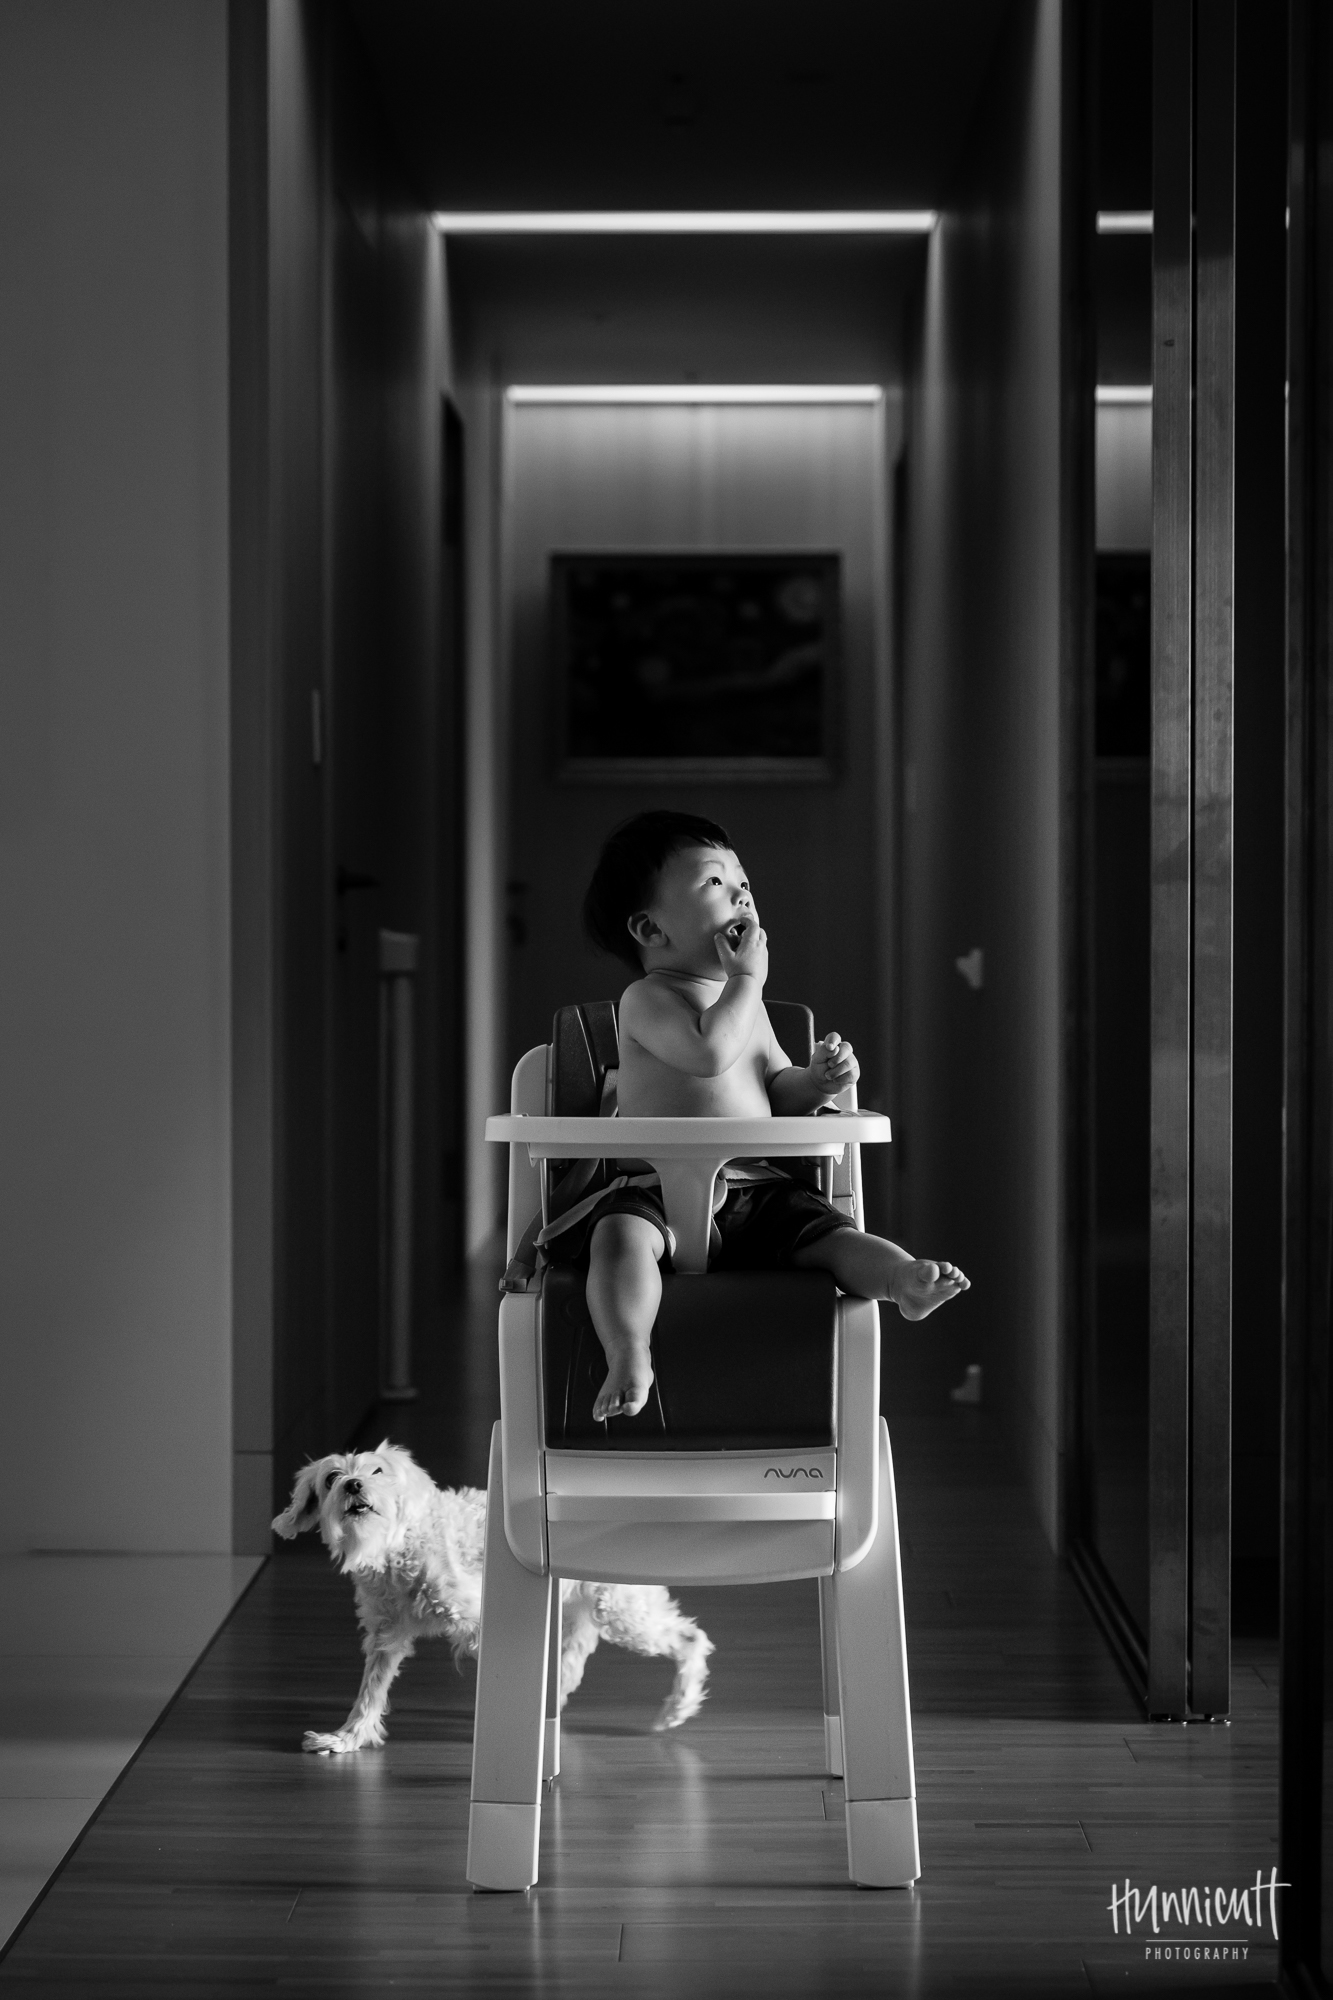 Indoor-Natural-Light-Family-HunnicuttPhotography-RebeccaHunnicuttFarren-Taichung-Taiwan-20